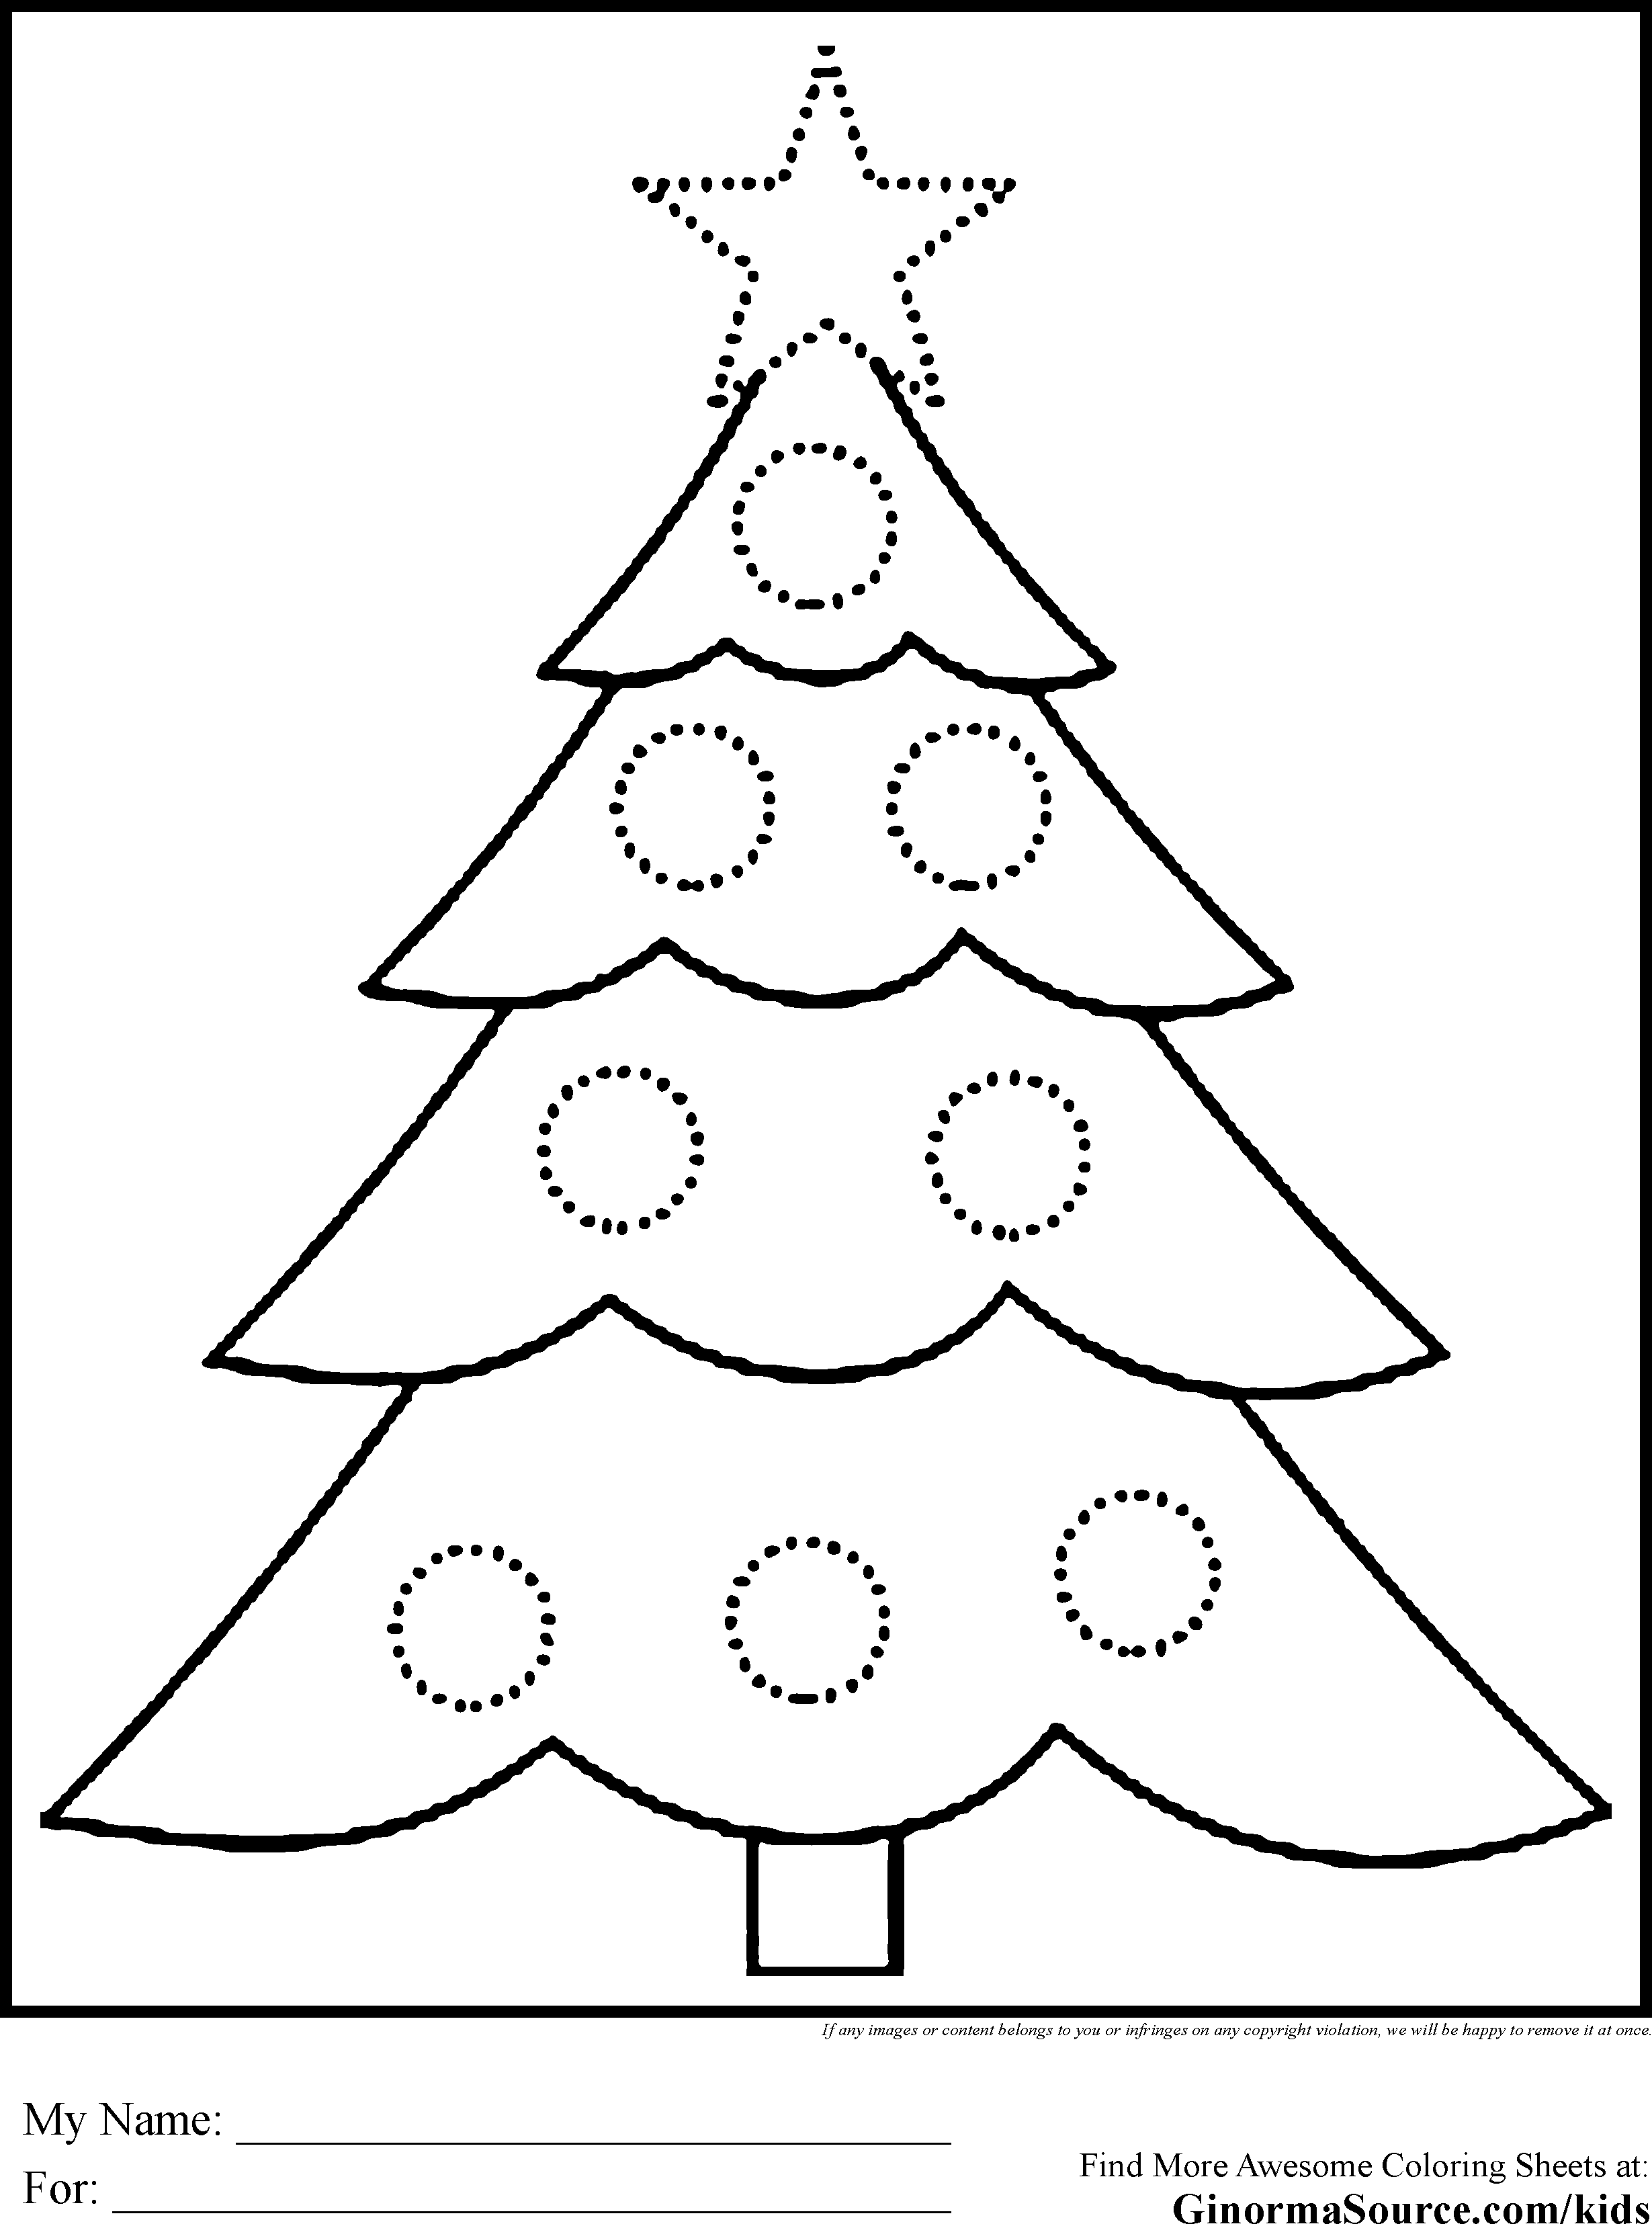 large picture coloring pages - photo#34